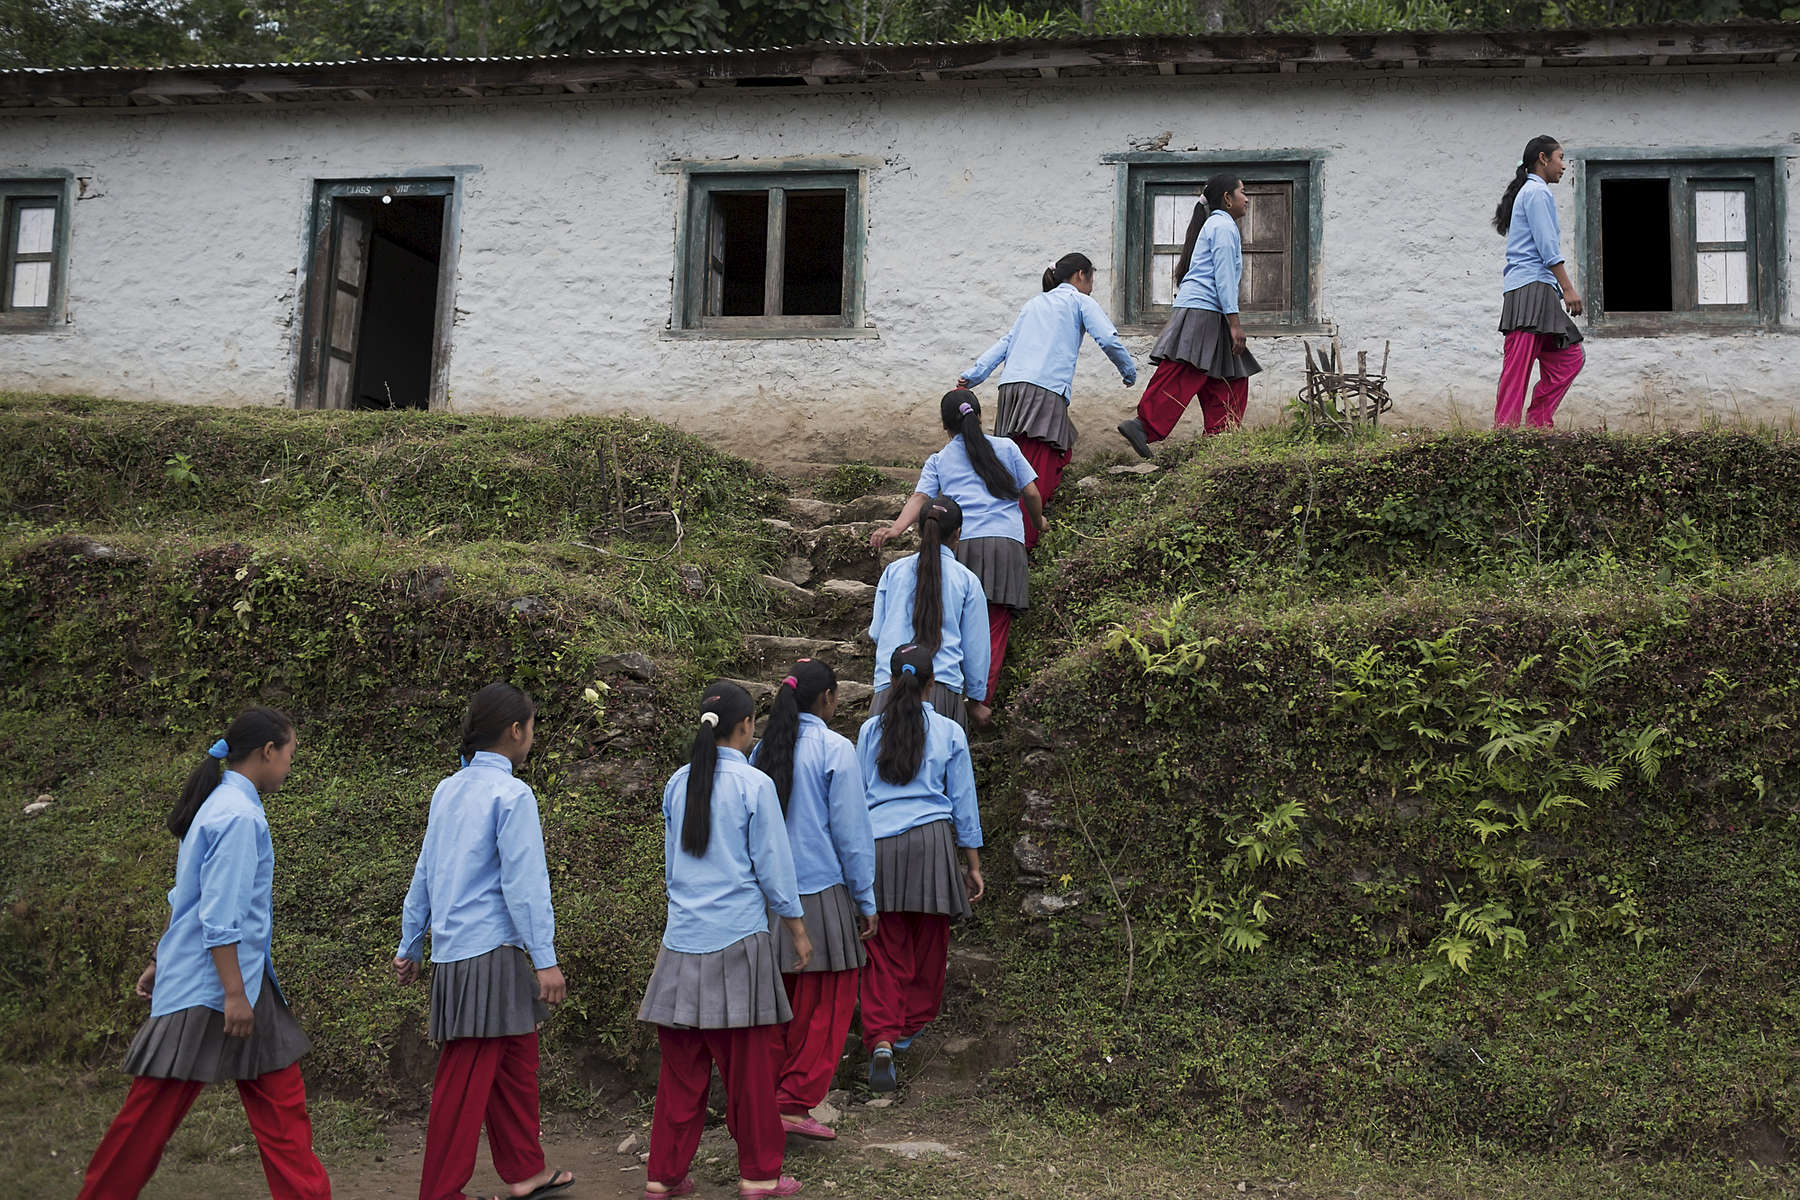 Students walk in grades to their classrooms at Birendrodroya Higher Secondary School in Mukli, lower Solu Khumbu District, Nepal. AHF through its partner REED has provided teacher-training programs for the schools teachers while a number of the students also received scholarships.